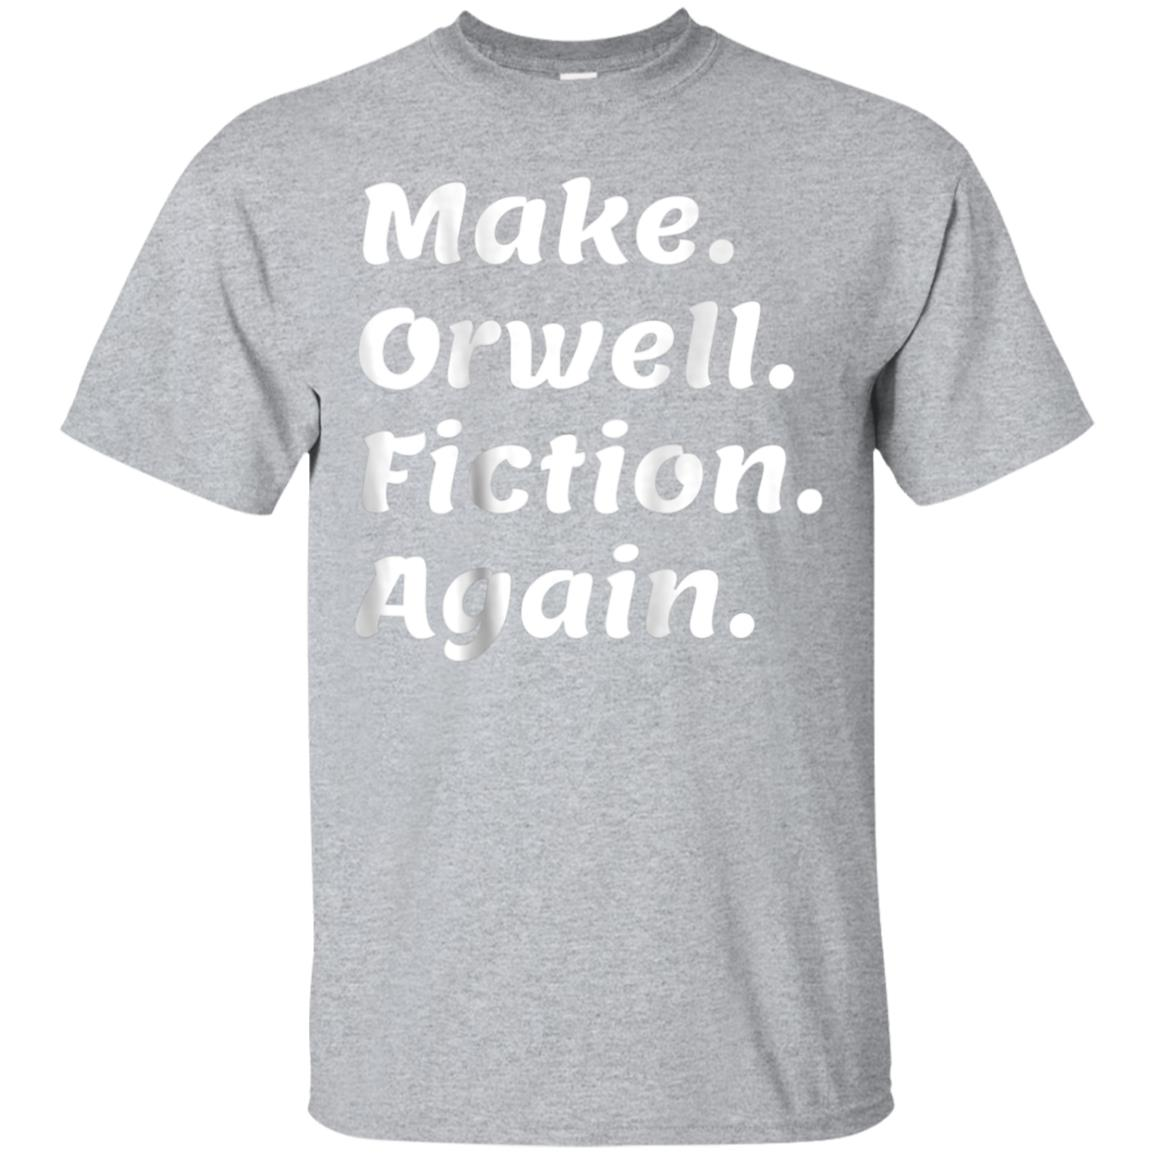 Make Orwell Fiction Again T-Shirt 99promocode